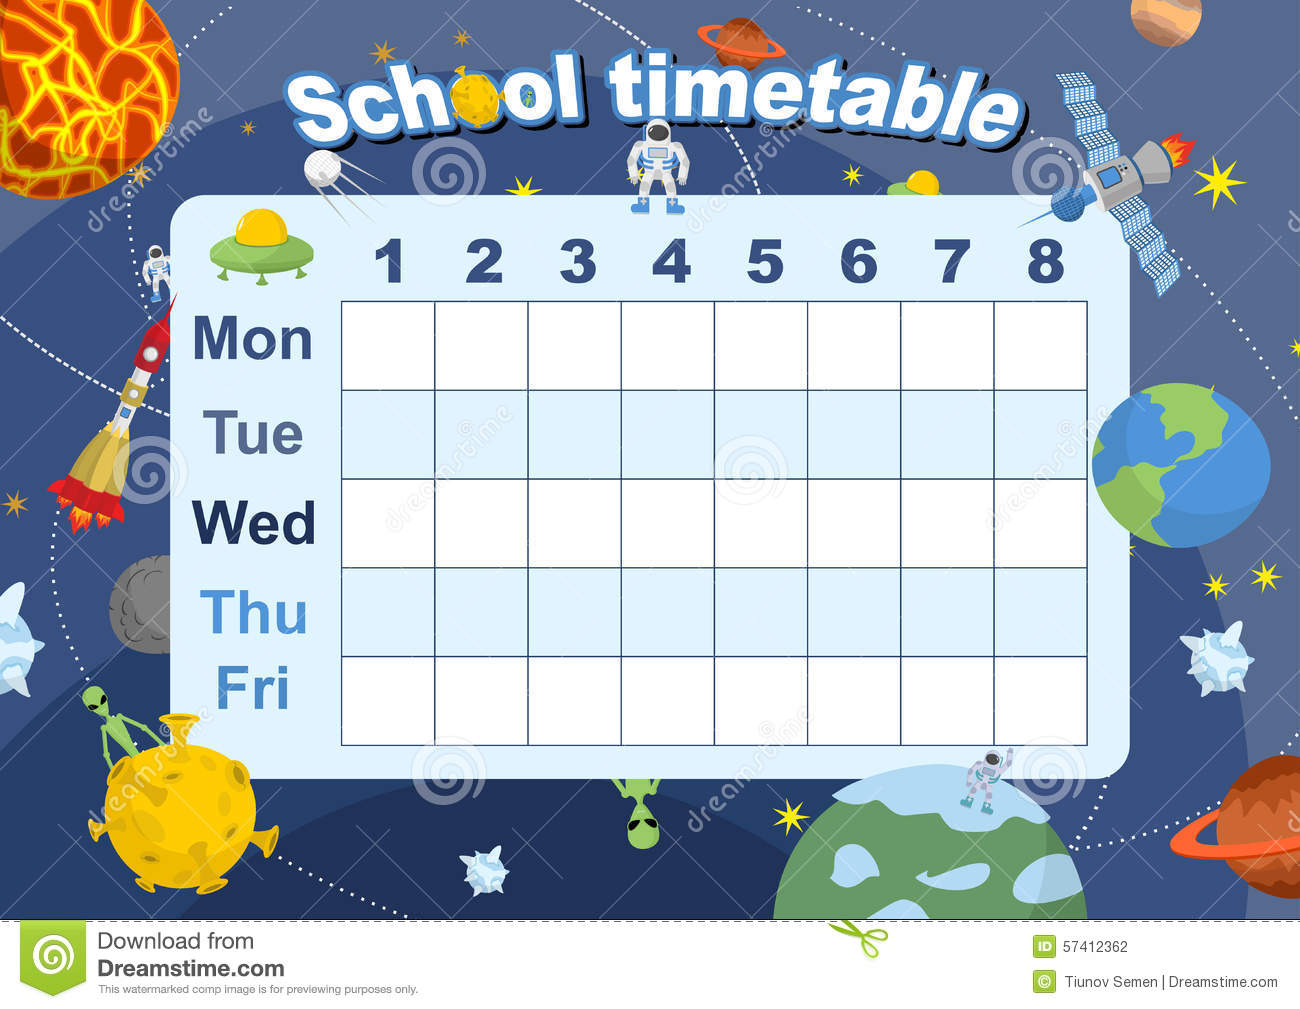 Schedule School Timetable On Theme Of Space And Galaxy